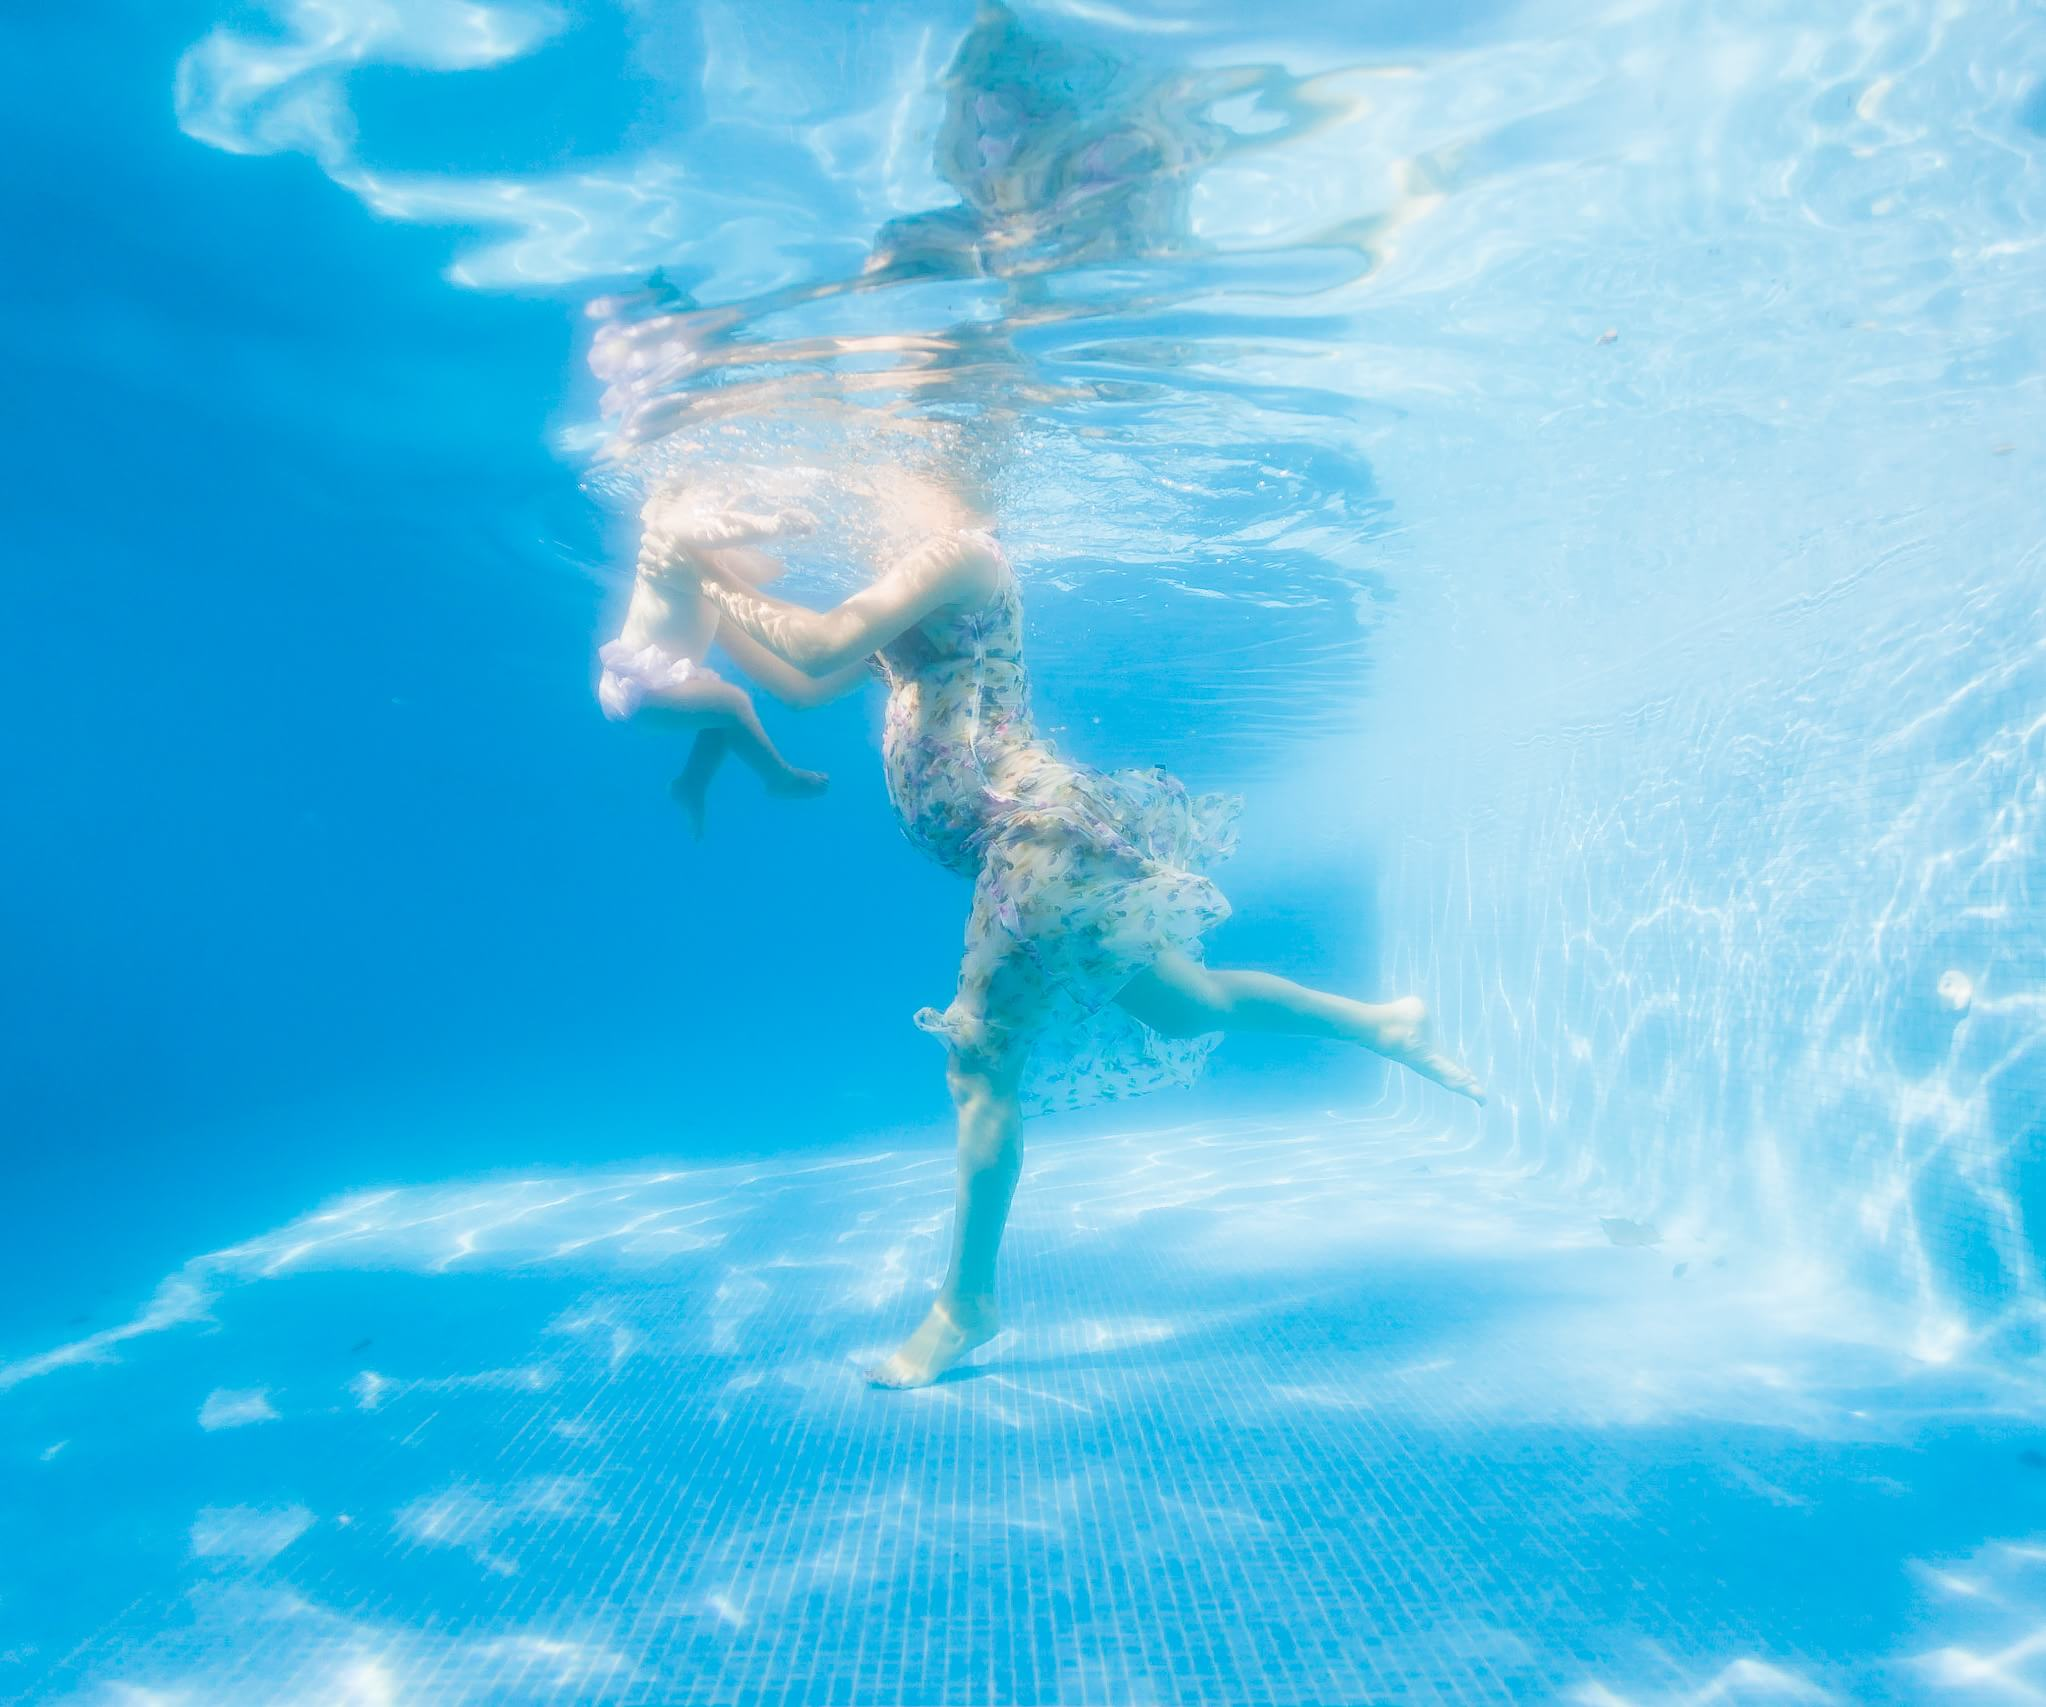 Movement underwater by Mexico wedding photographer